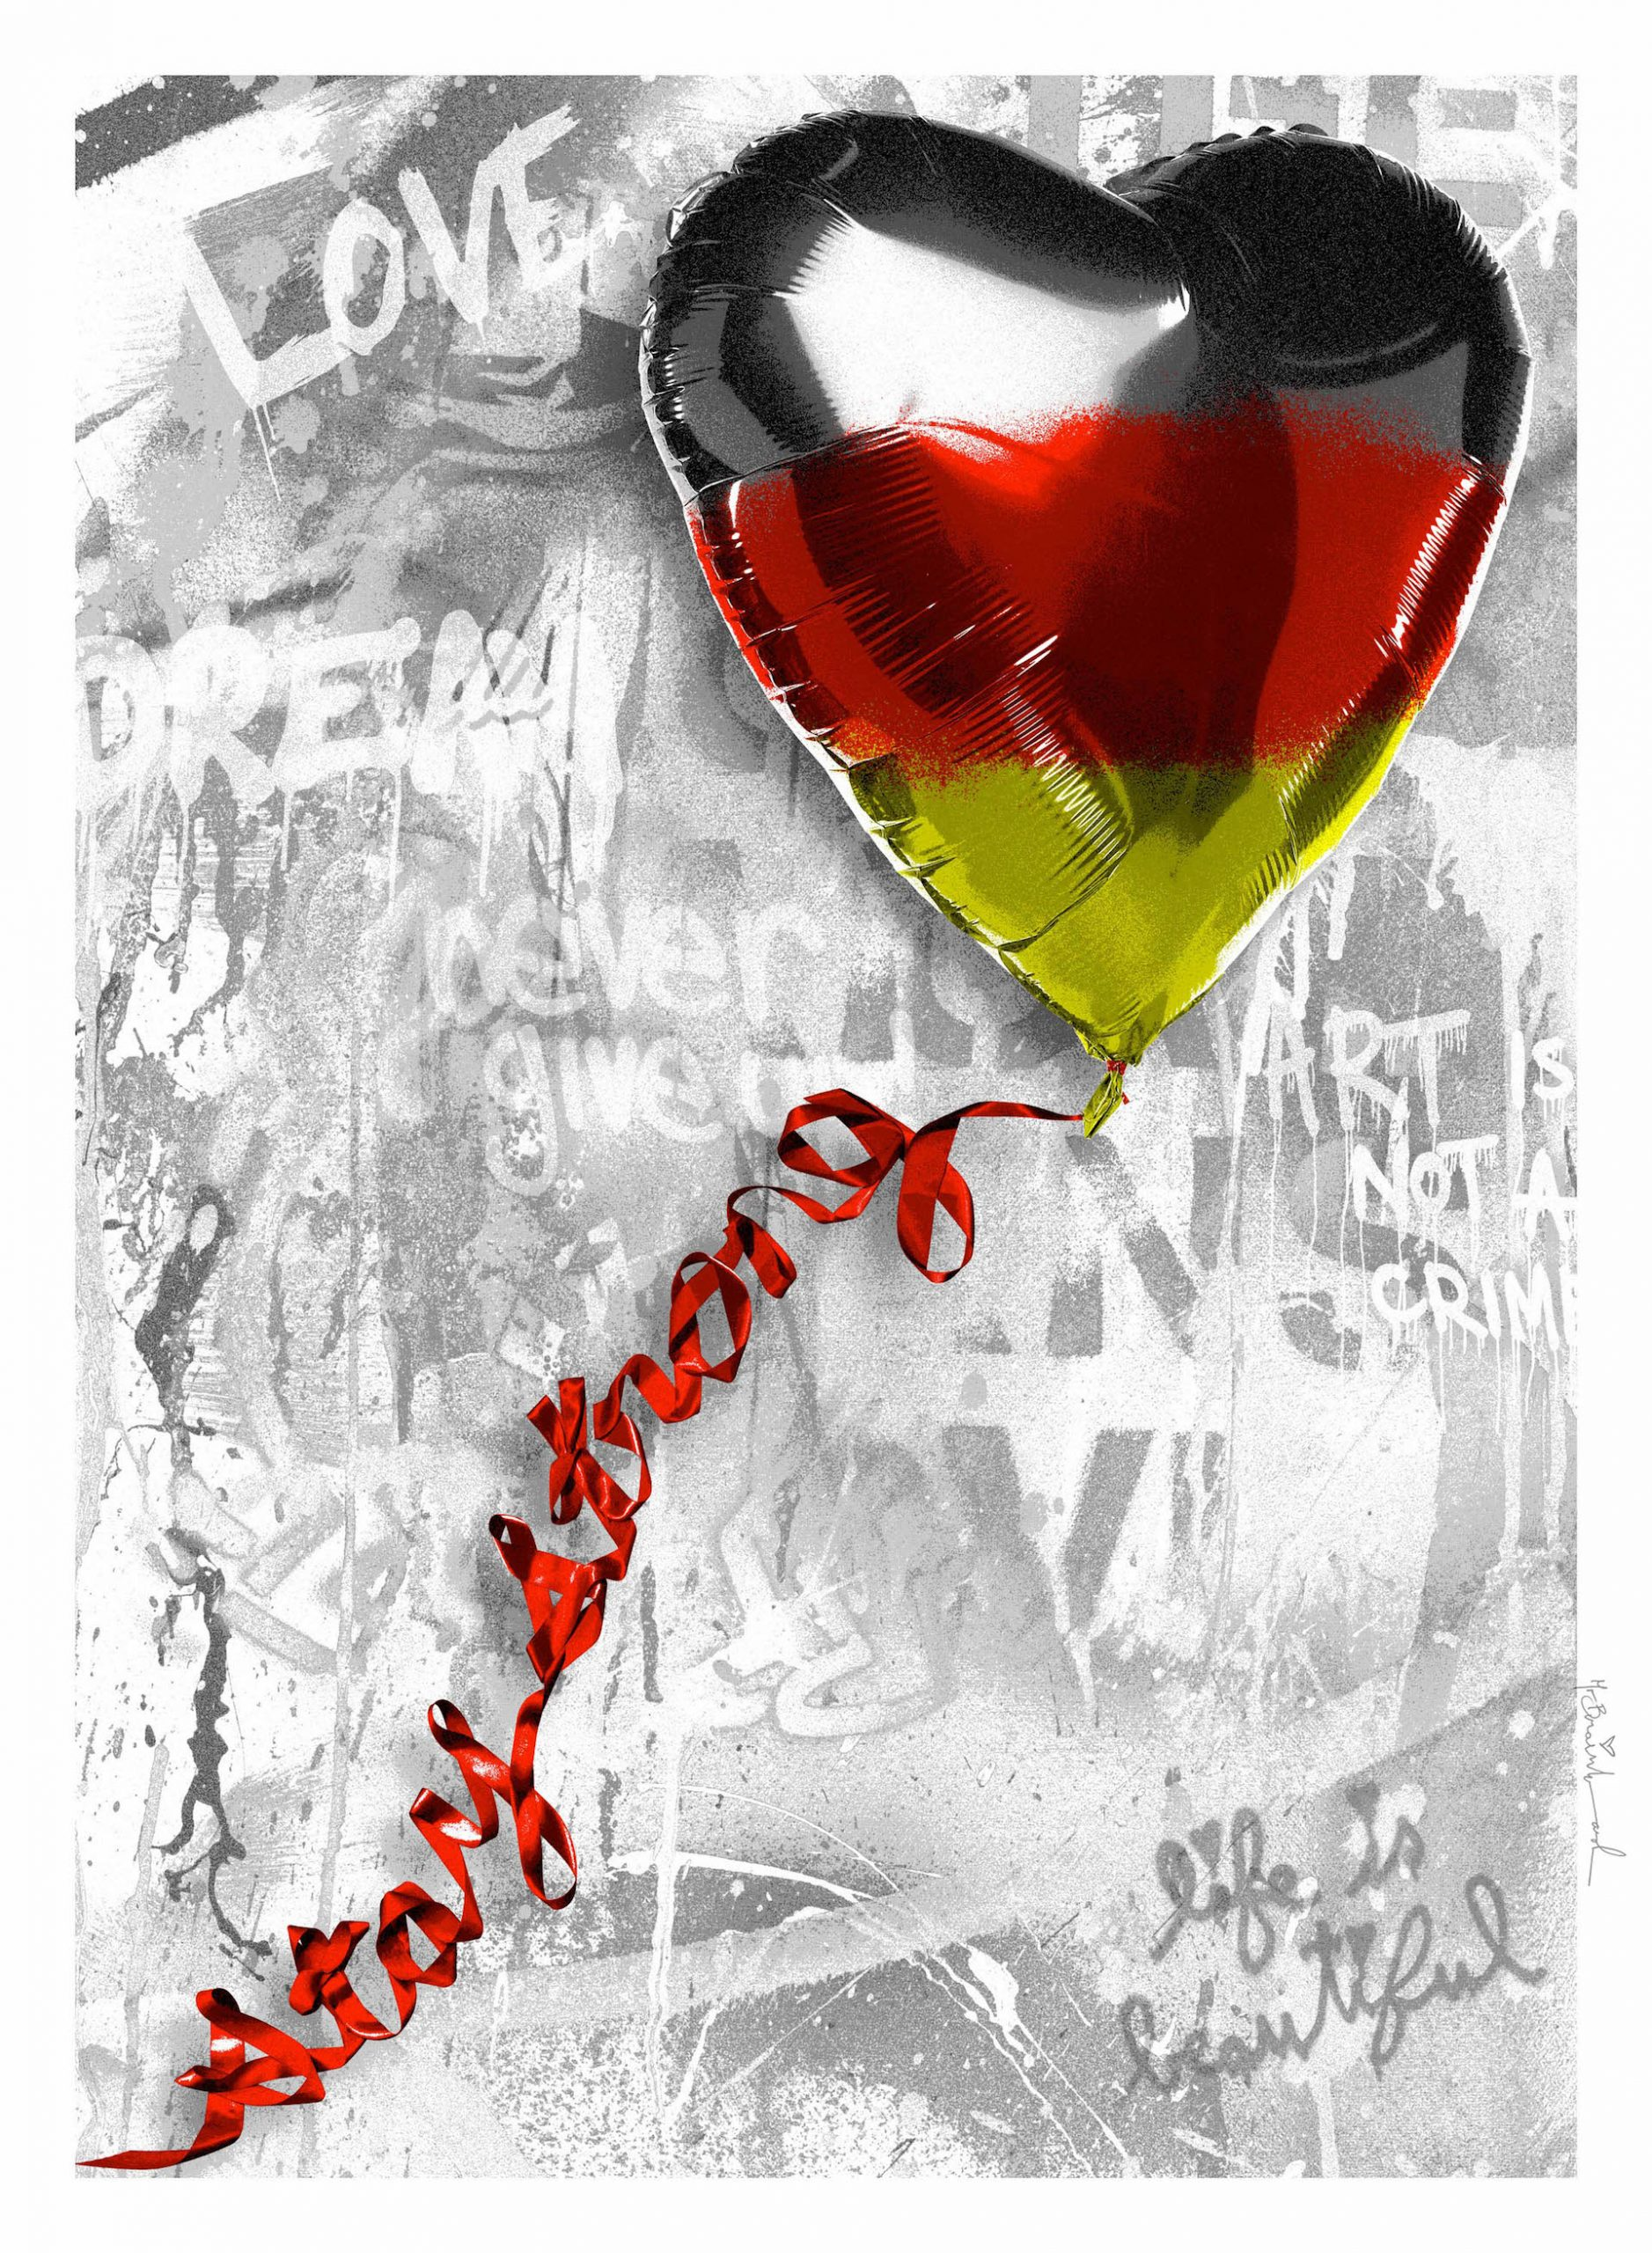 Germany Stay strong by Mr. Brainwash